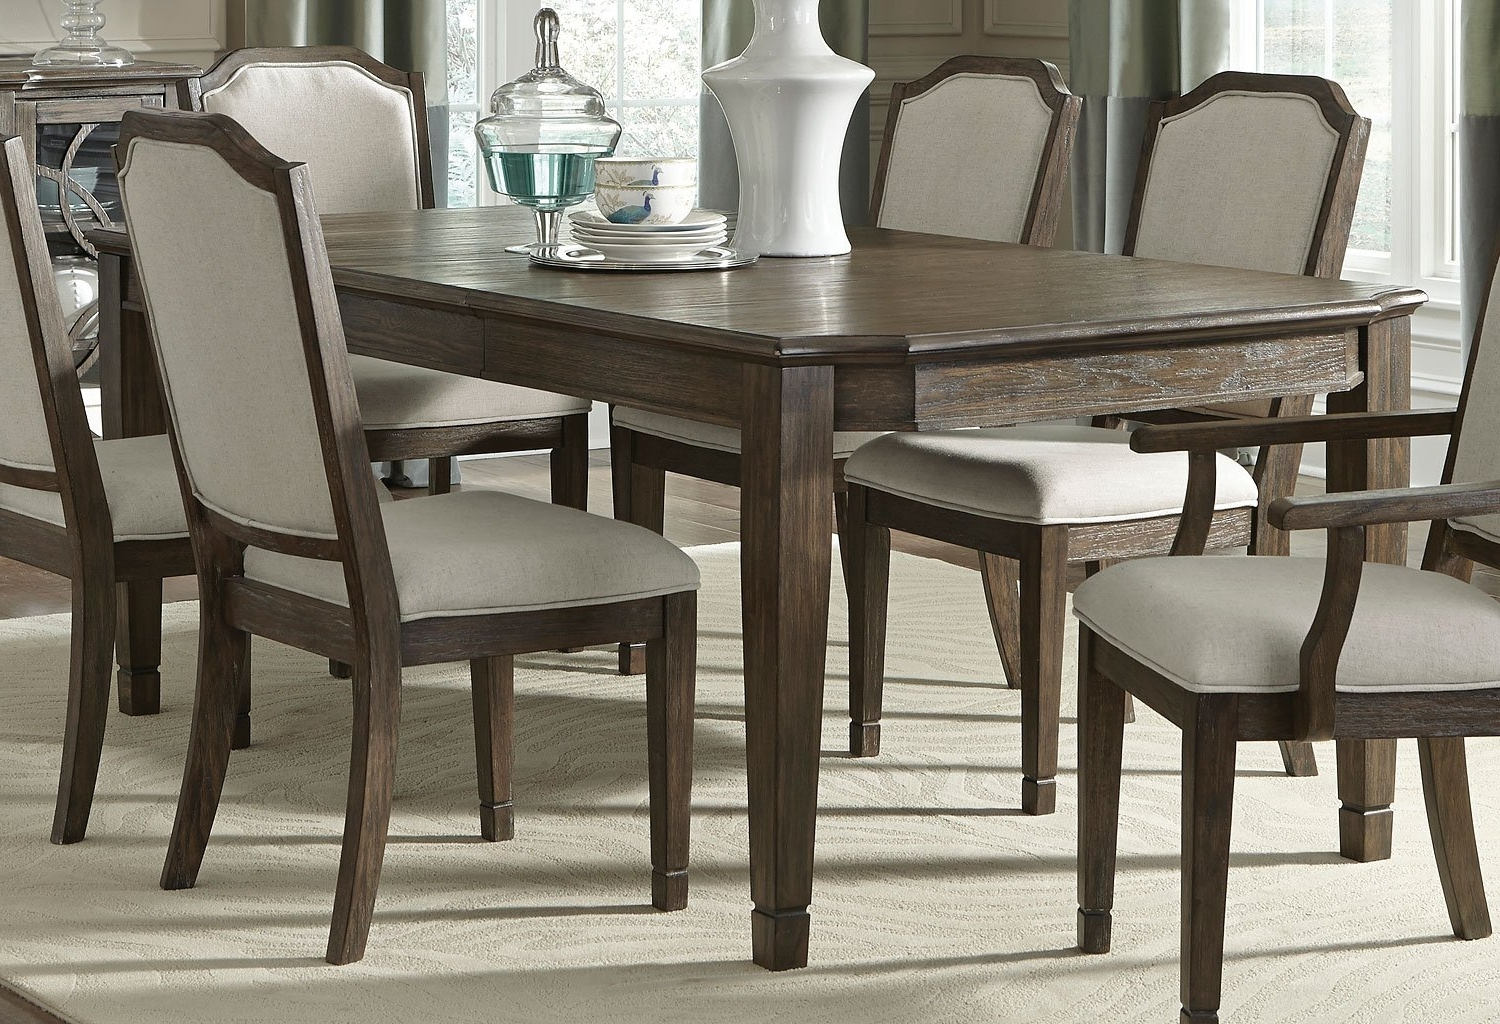 Hamilton Dining Tables in Most Recent Hamilton Dining Table Samuel Lawrence Furniture